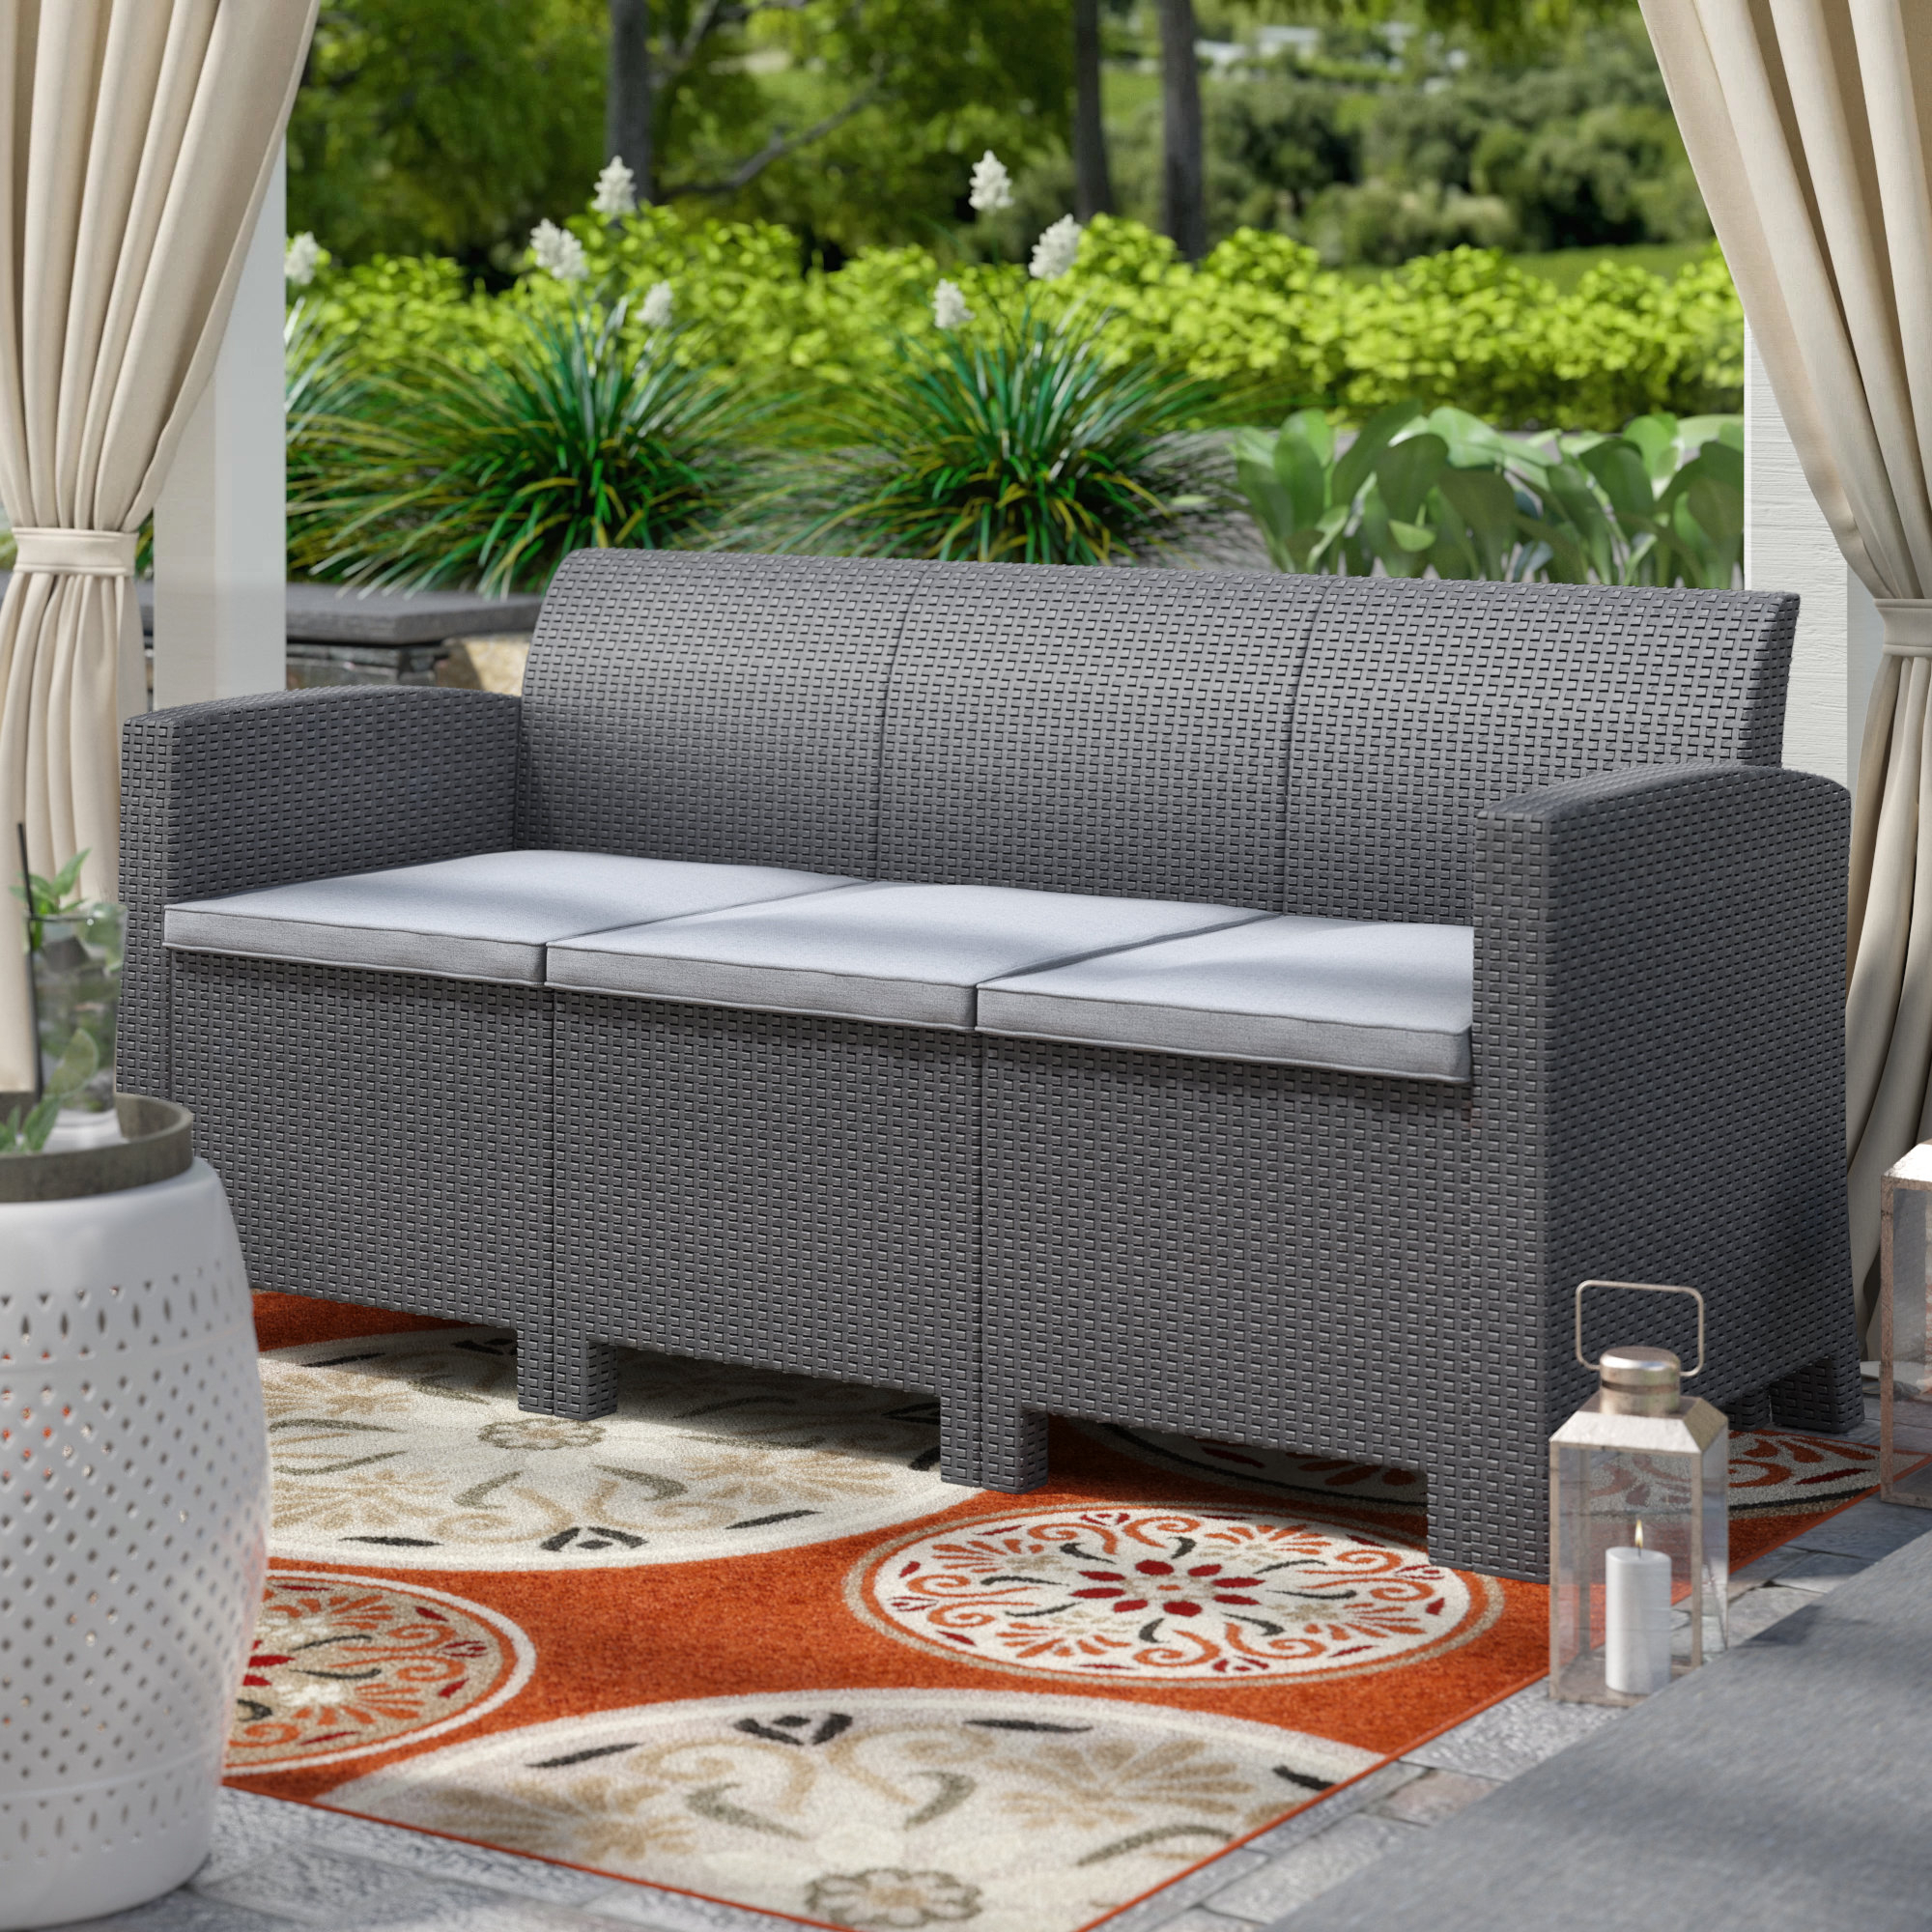 Silloth Patio Sofas With Cushions Intended For Most Recently Released Yoselin Patio Sofa With Cushions (View 13 of 20)